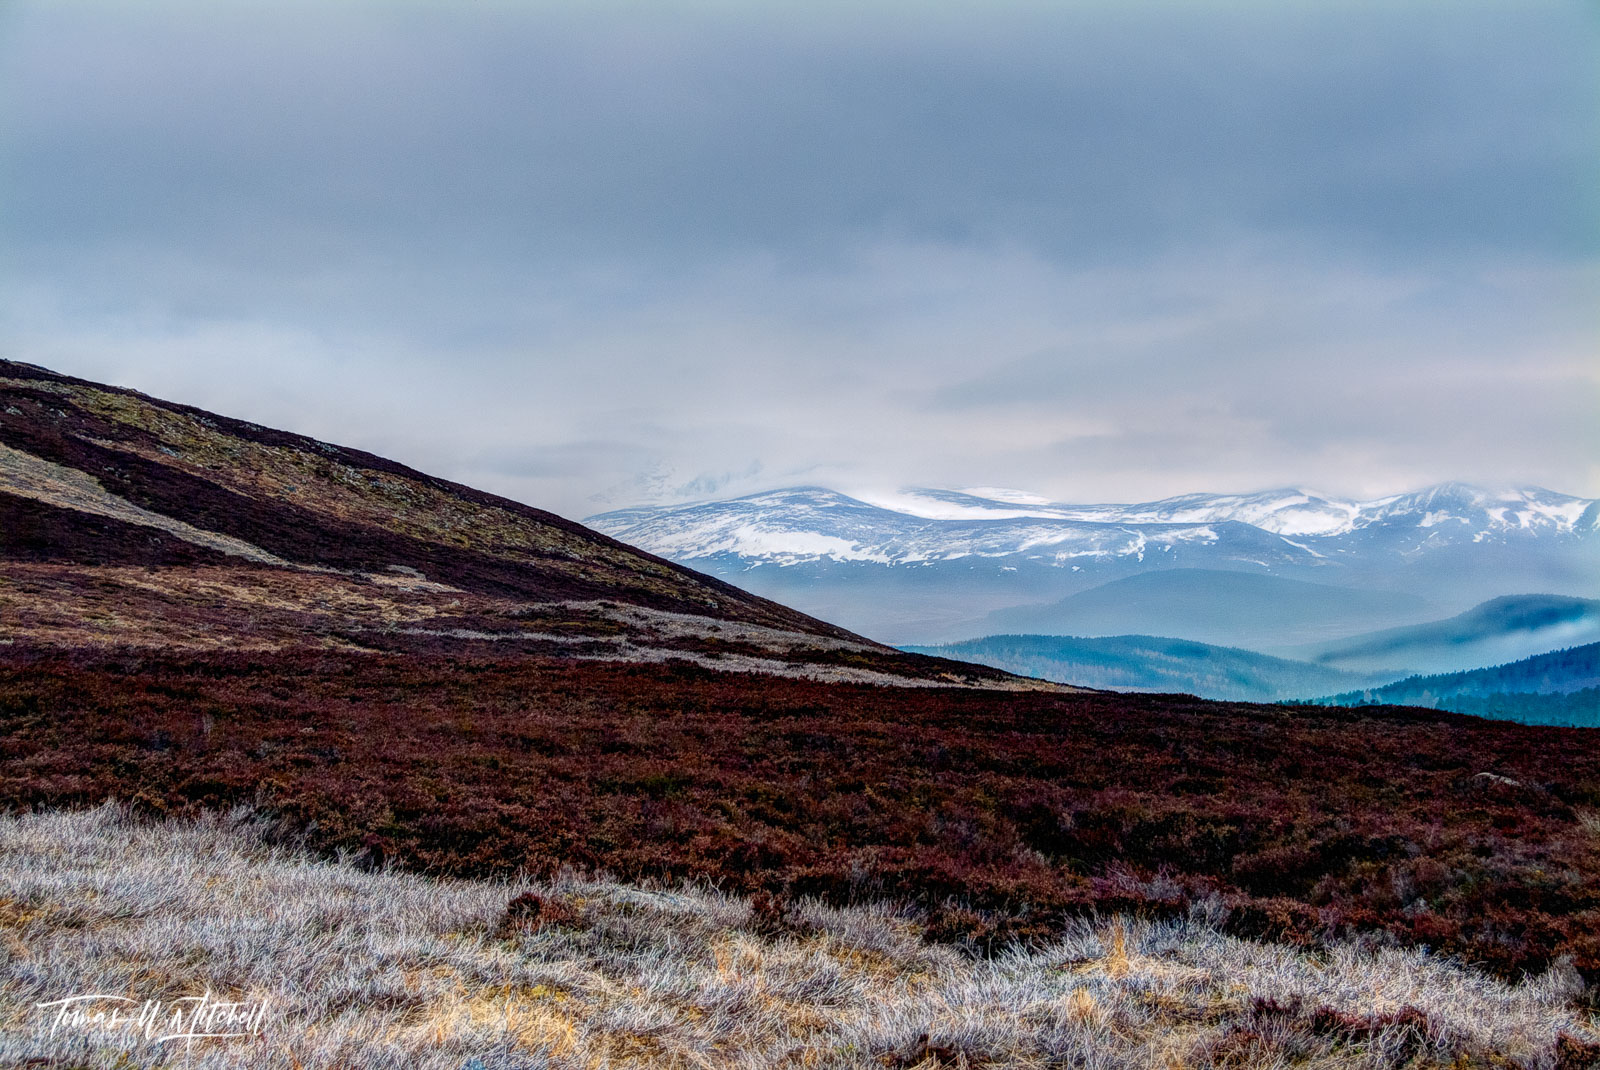 limited edition, fine art, prints, stonehaven, a944, cairngorm mountains, scotland, mountains, snow, moor, heather, layers, colors, rusty, red, photograph, photo